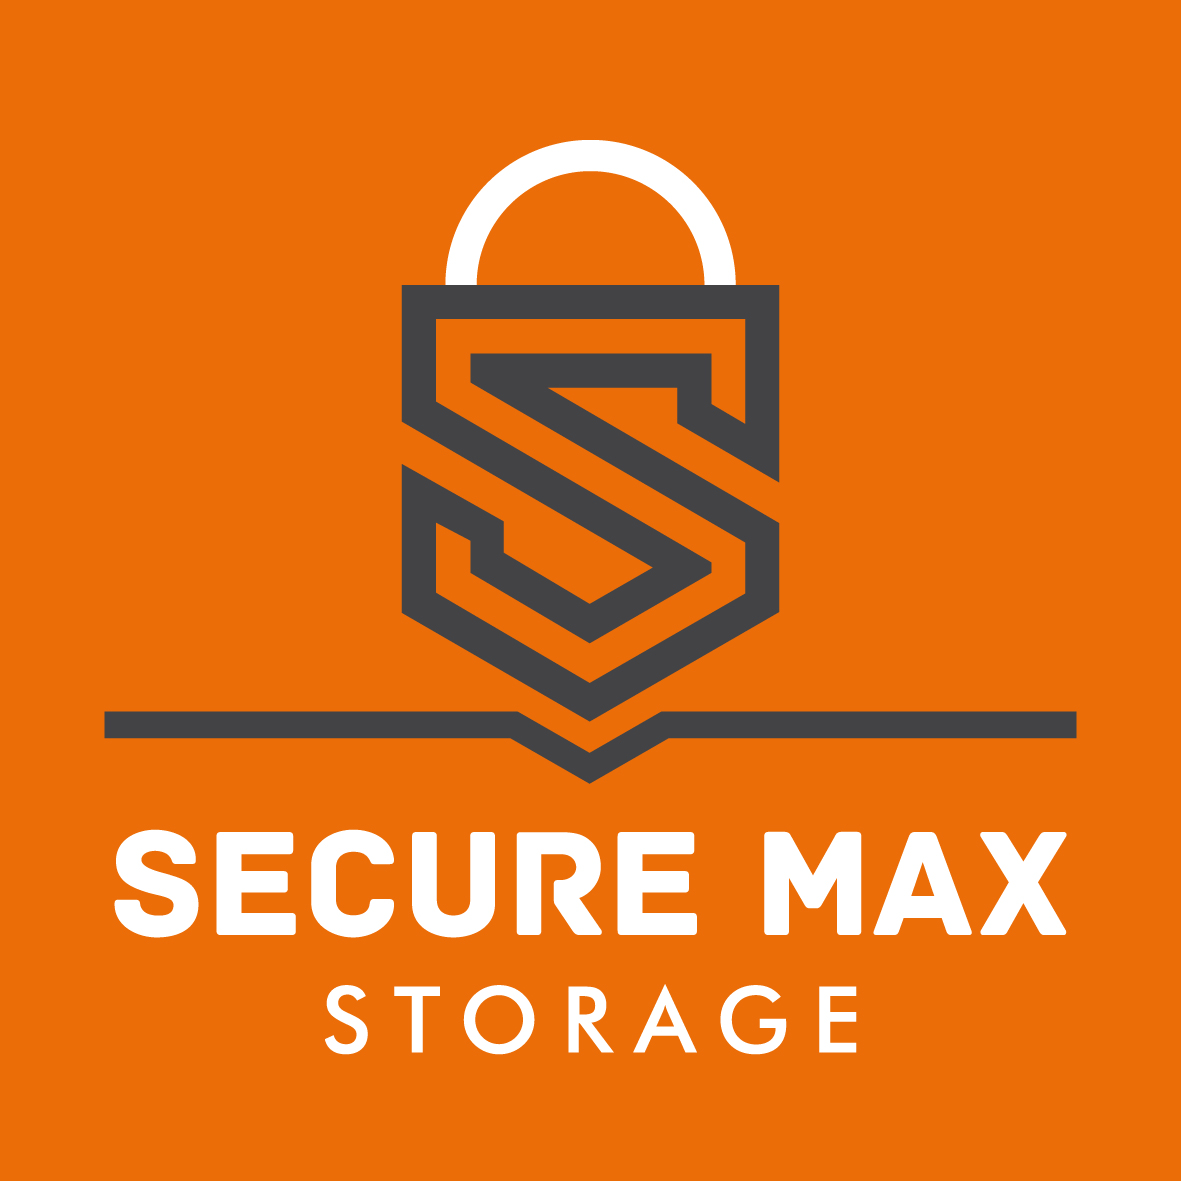 Self Storage Adelaide at Secure Max